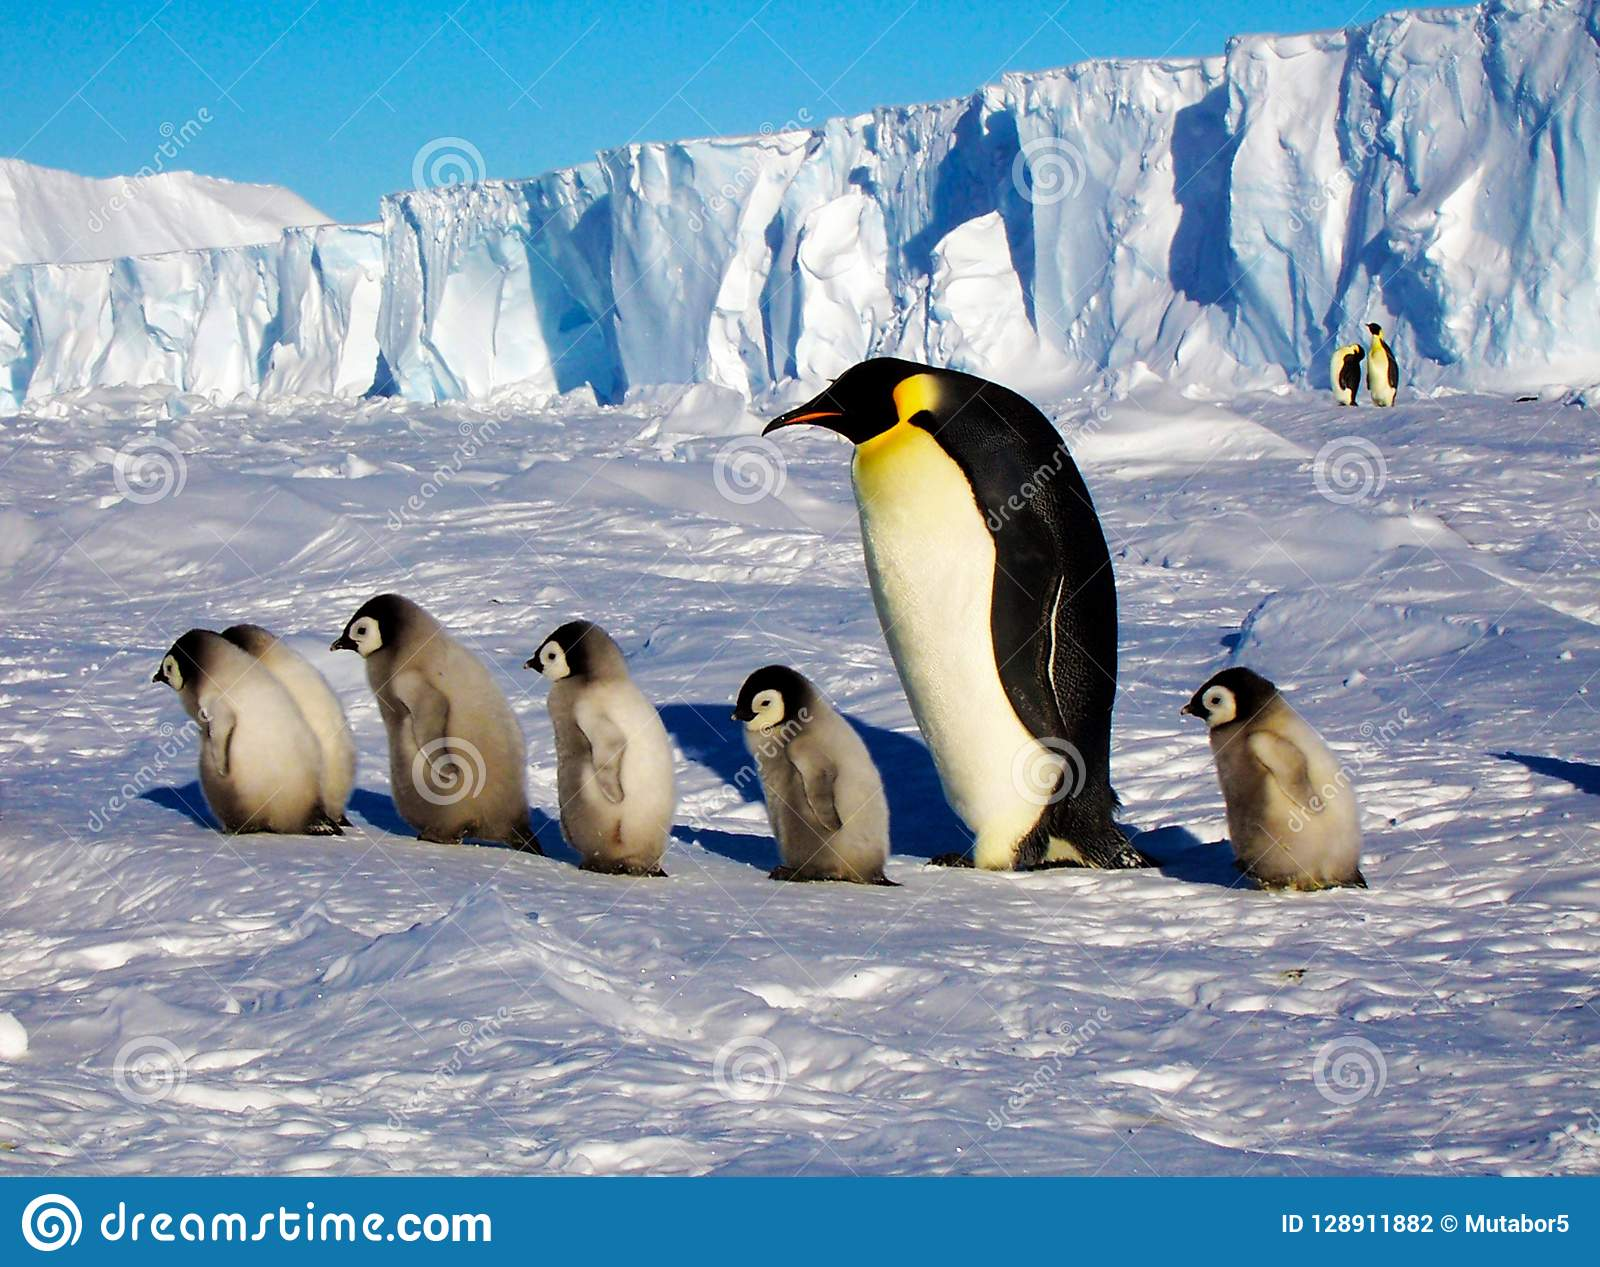 One penguin and several cubs are walk.The colony of Imperial penguins stands in the snow near the Iceberg. Shooting from the air.